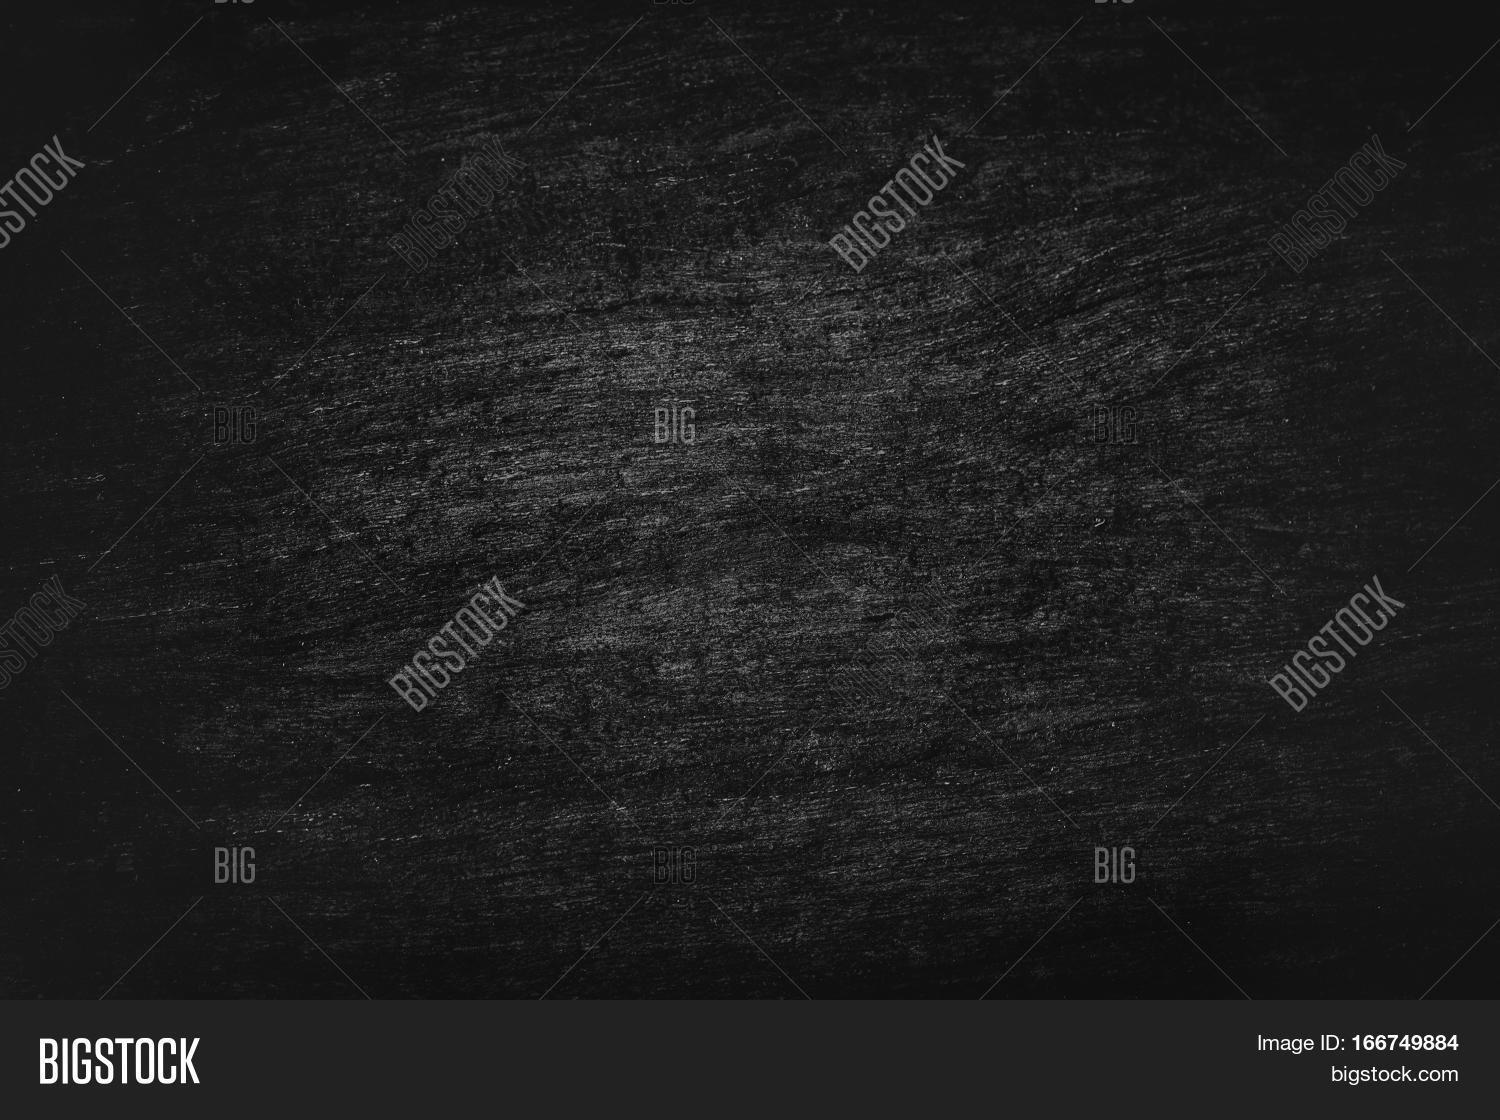 Black wood texture background  Abstract dark wood texture on black wall   Aged wood plank. Black Wood Texture Background  Image   Photo   Bigstock